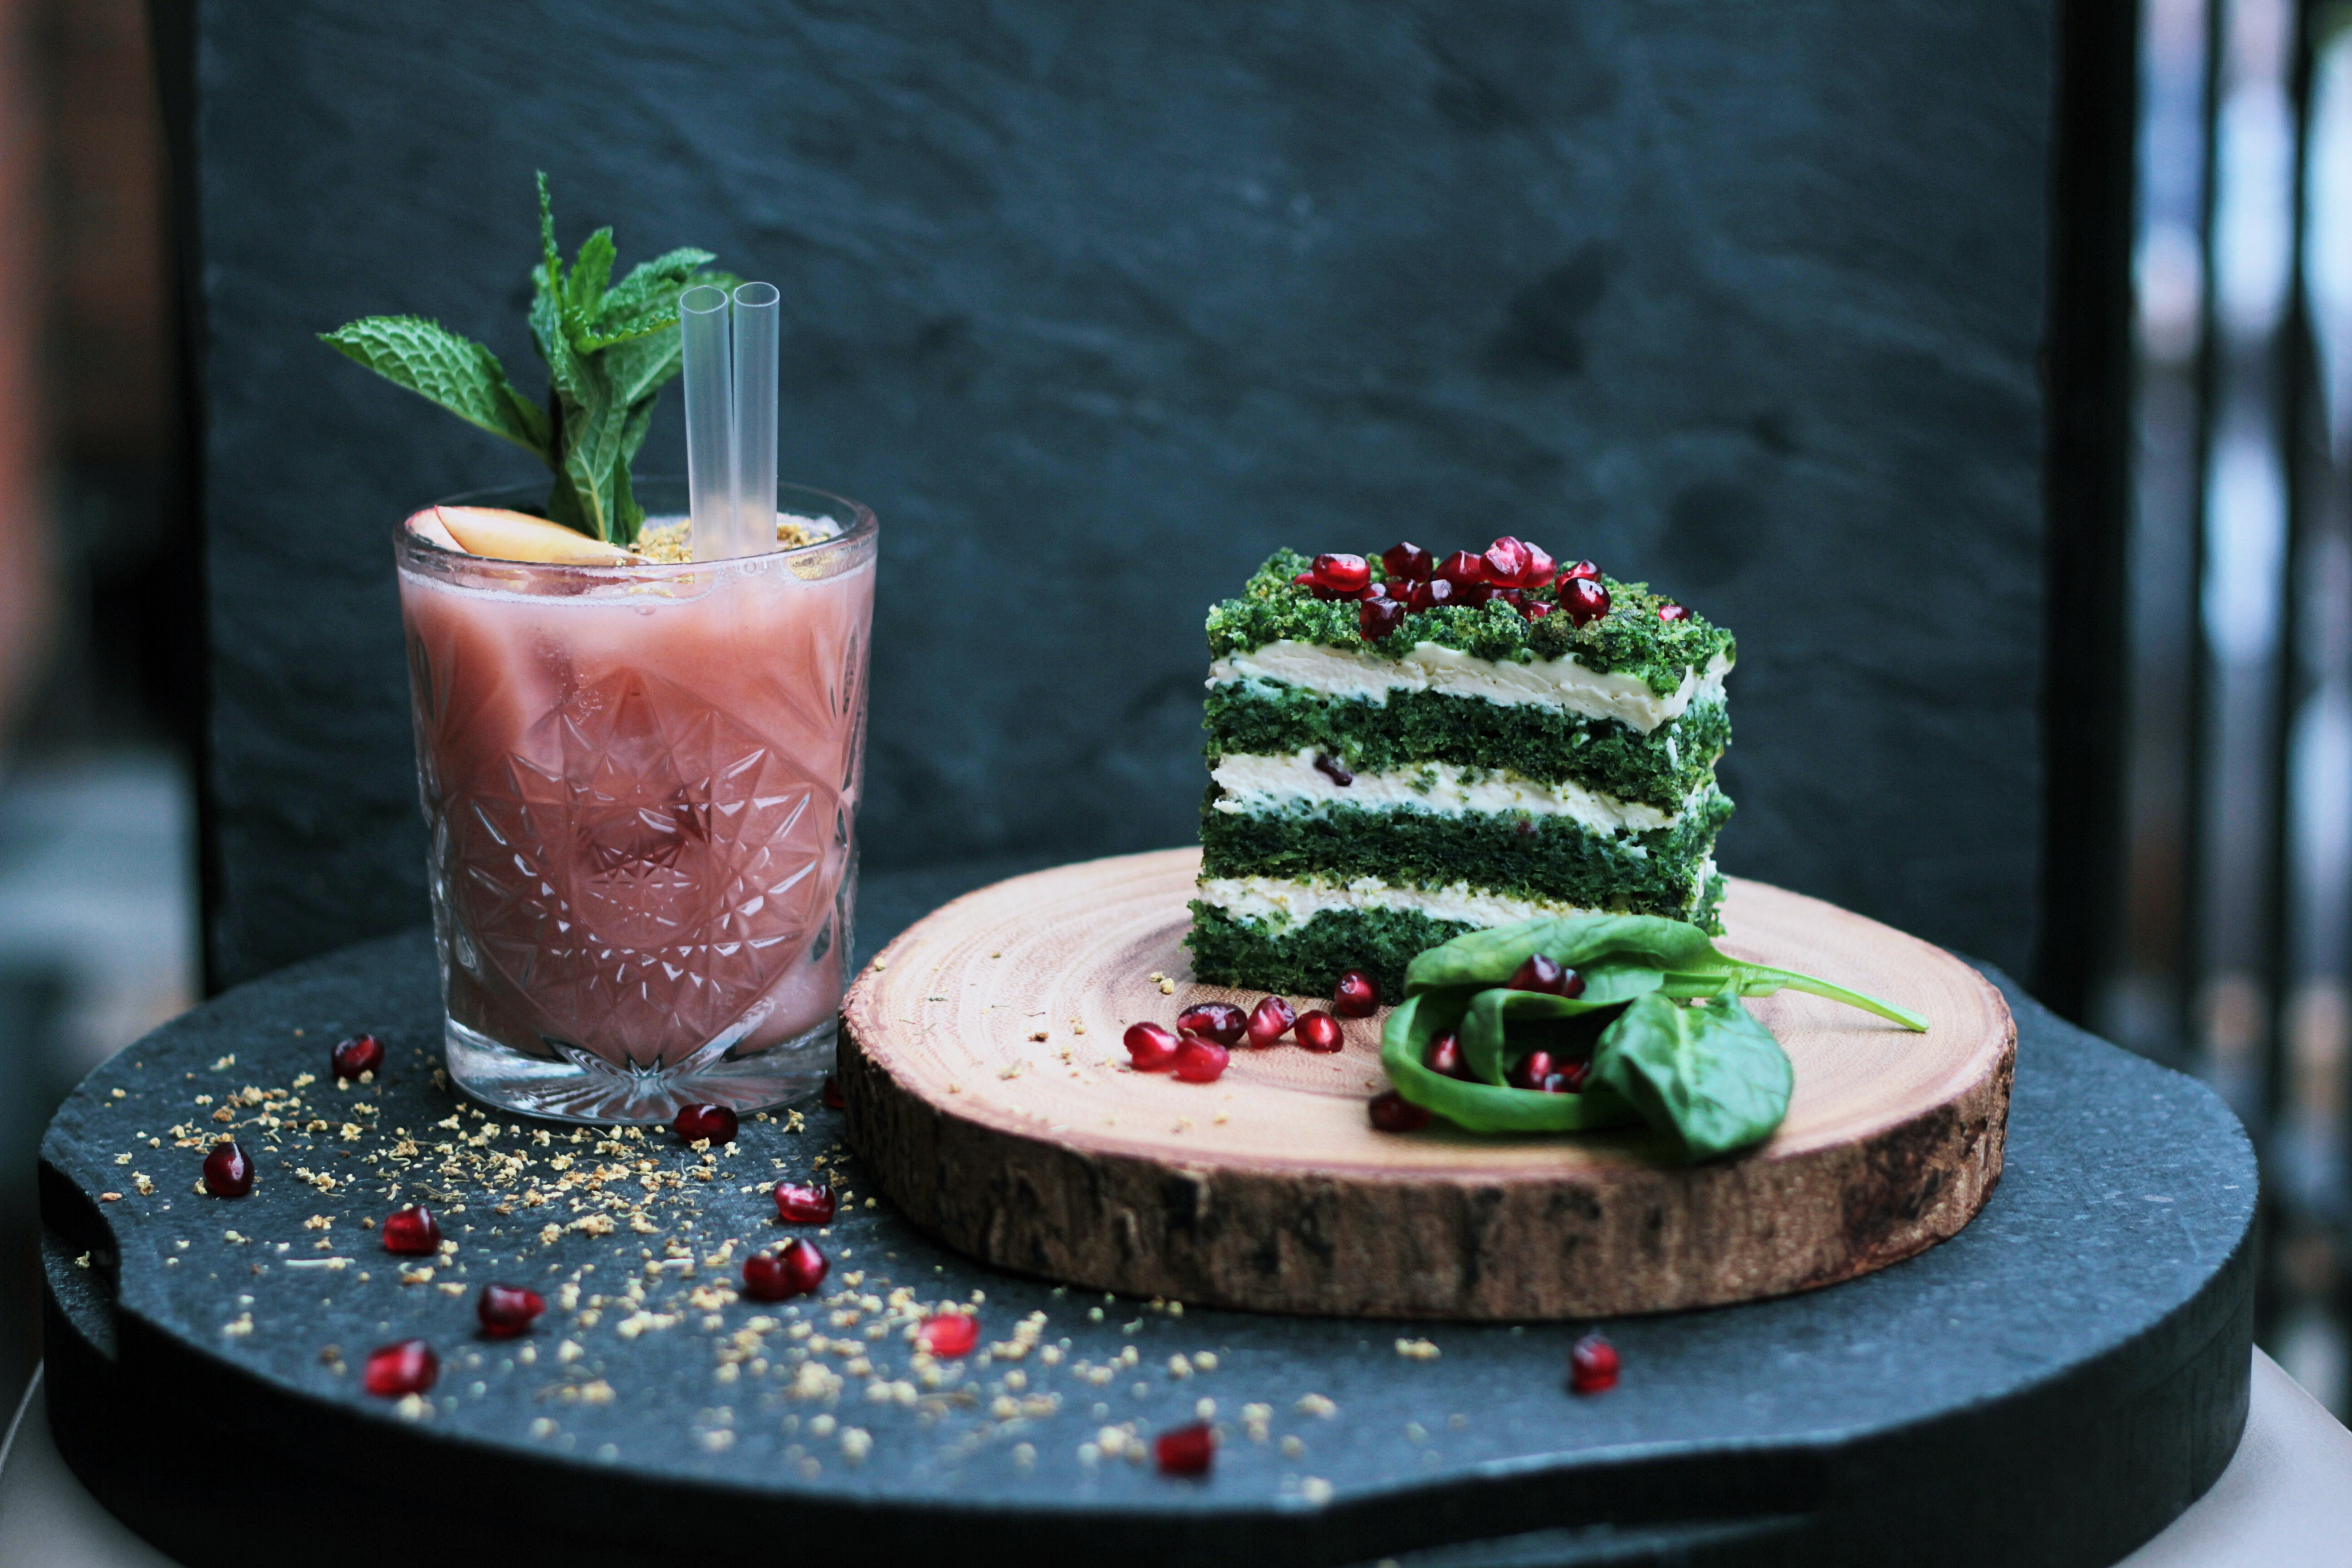 Layered stack of herbs, cheese, and pomegranate seeds with a fruity drink